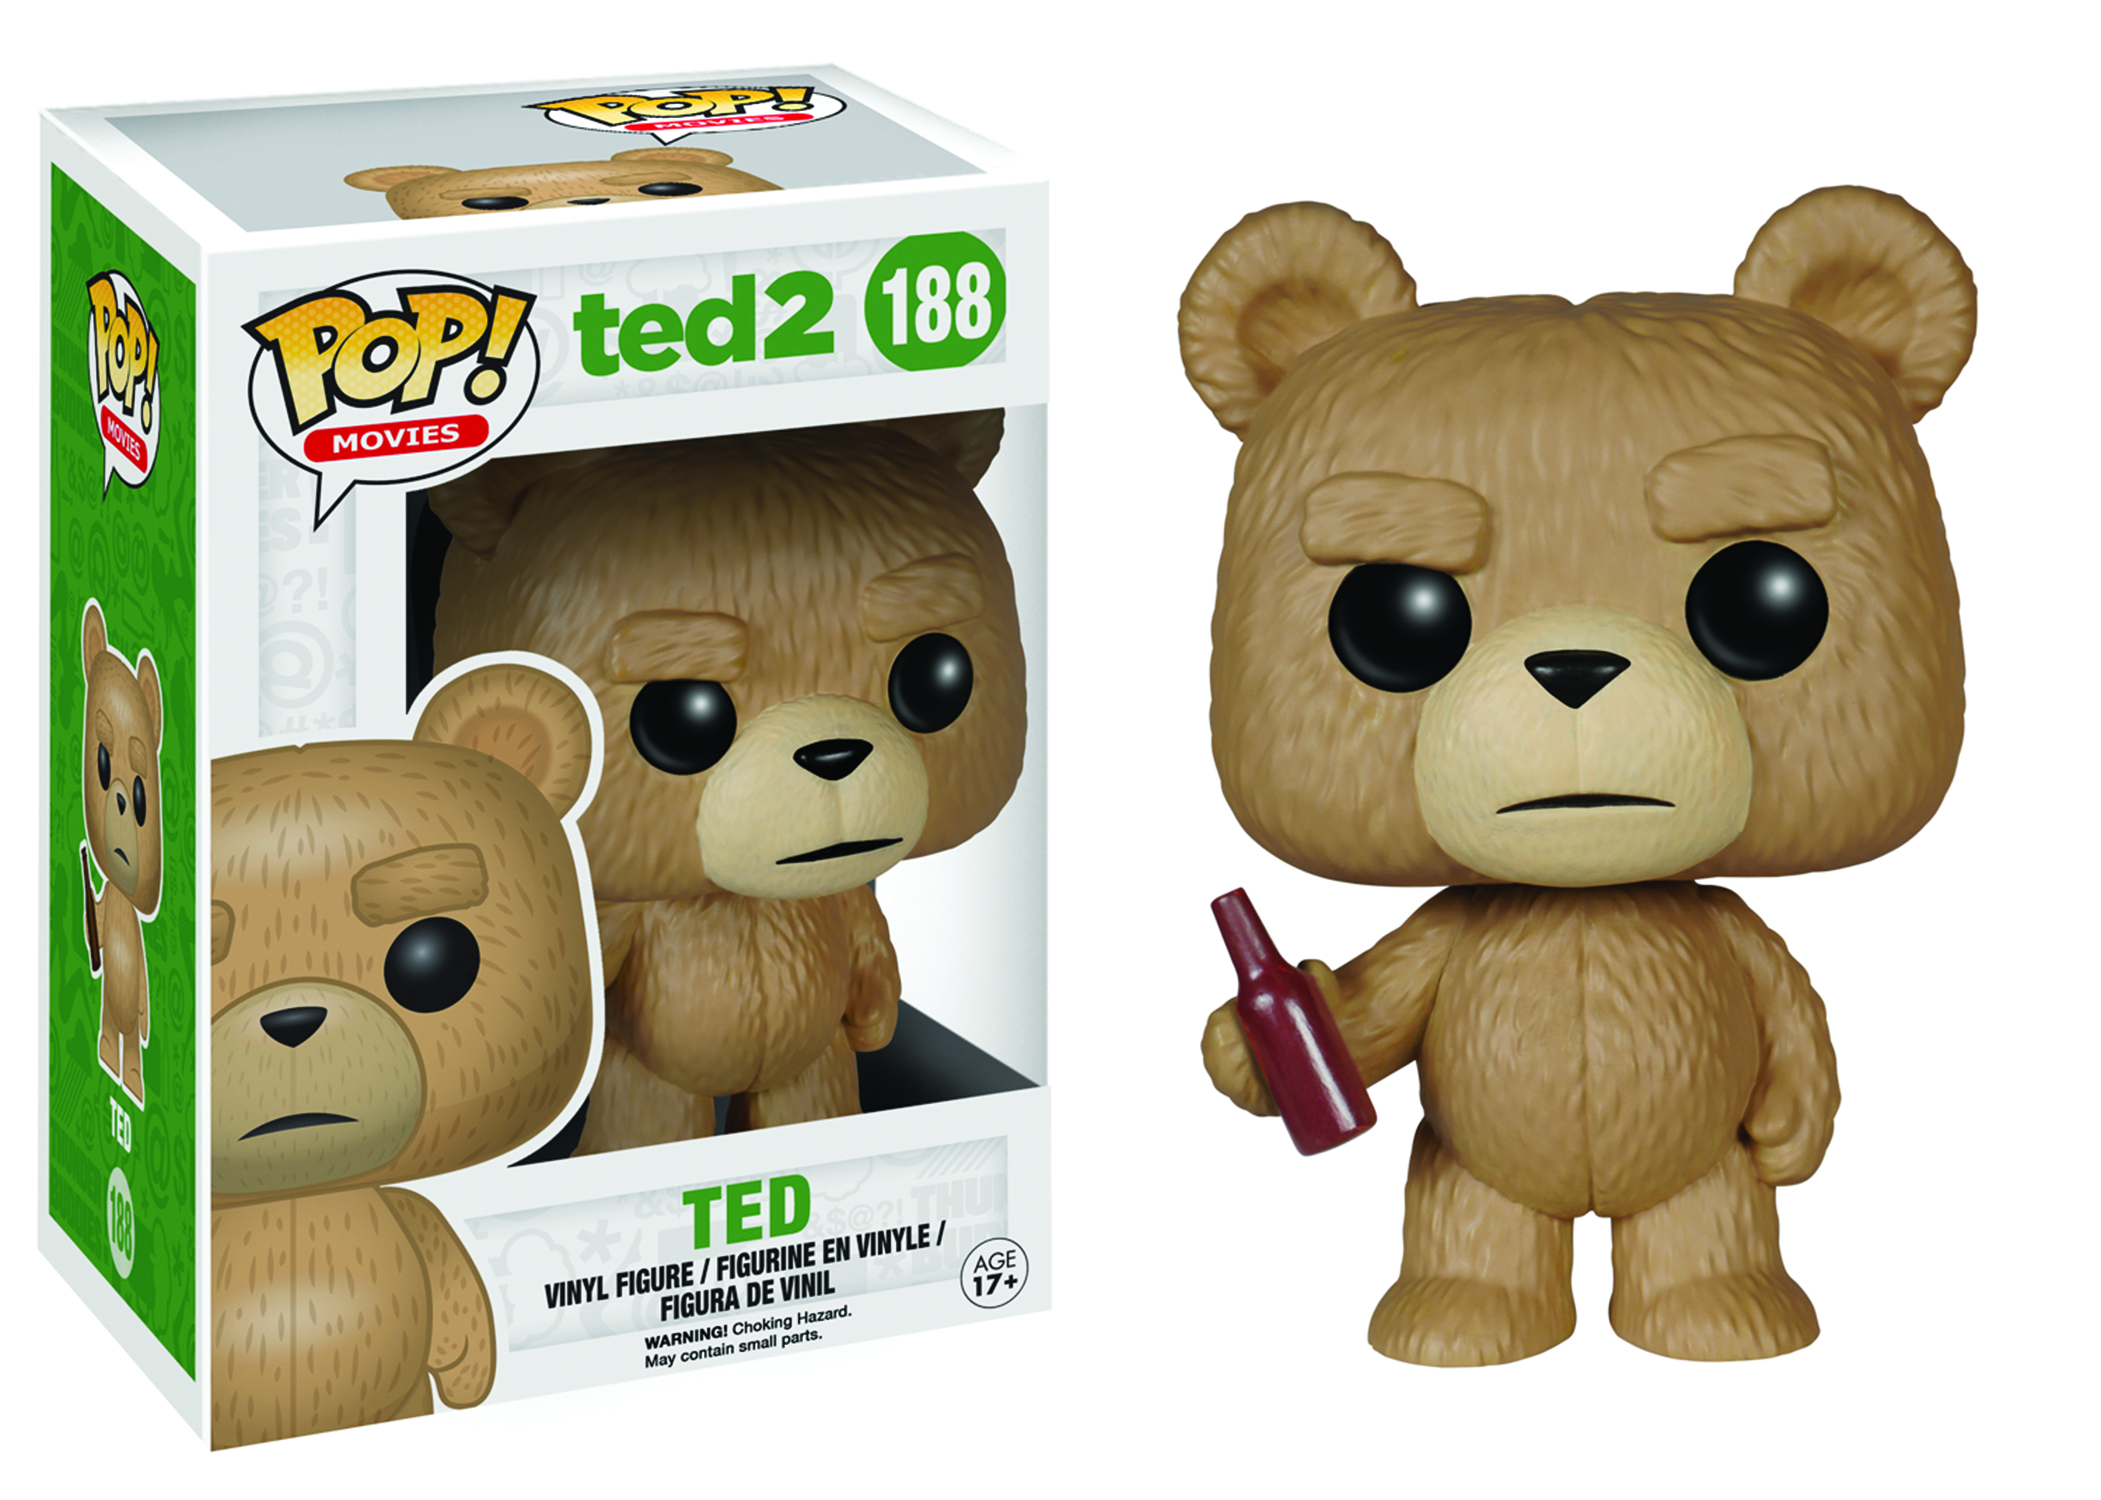 POP TED 2 TED W/BEER VINYL FIG